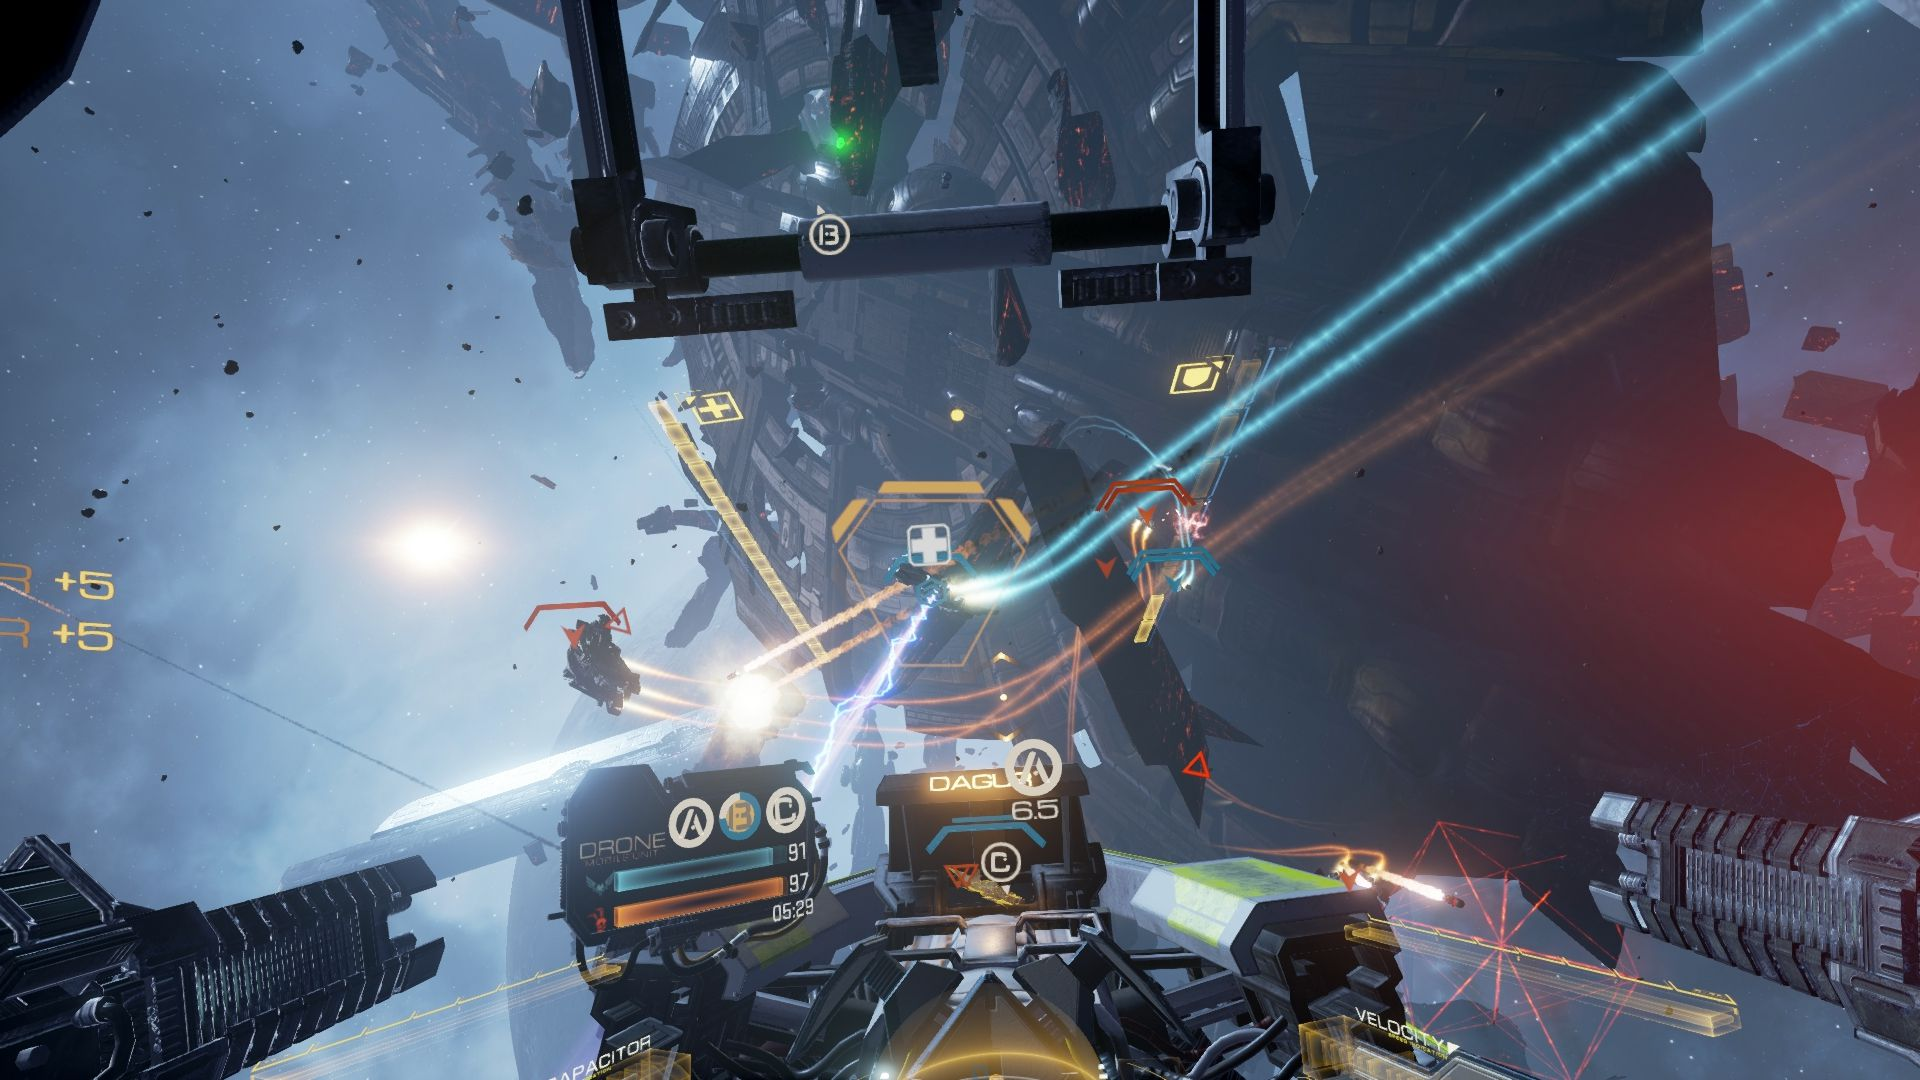 Preview – EVE: Valkyrie is the First 'Must Have' VR Game